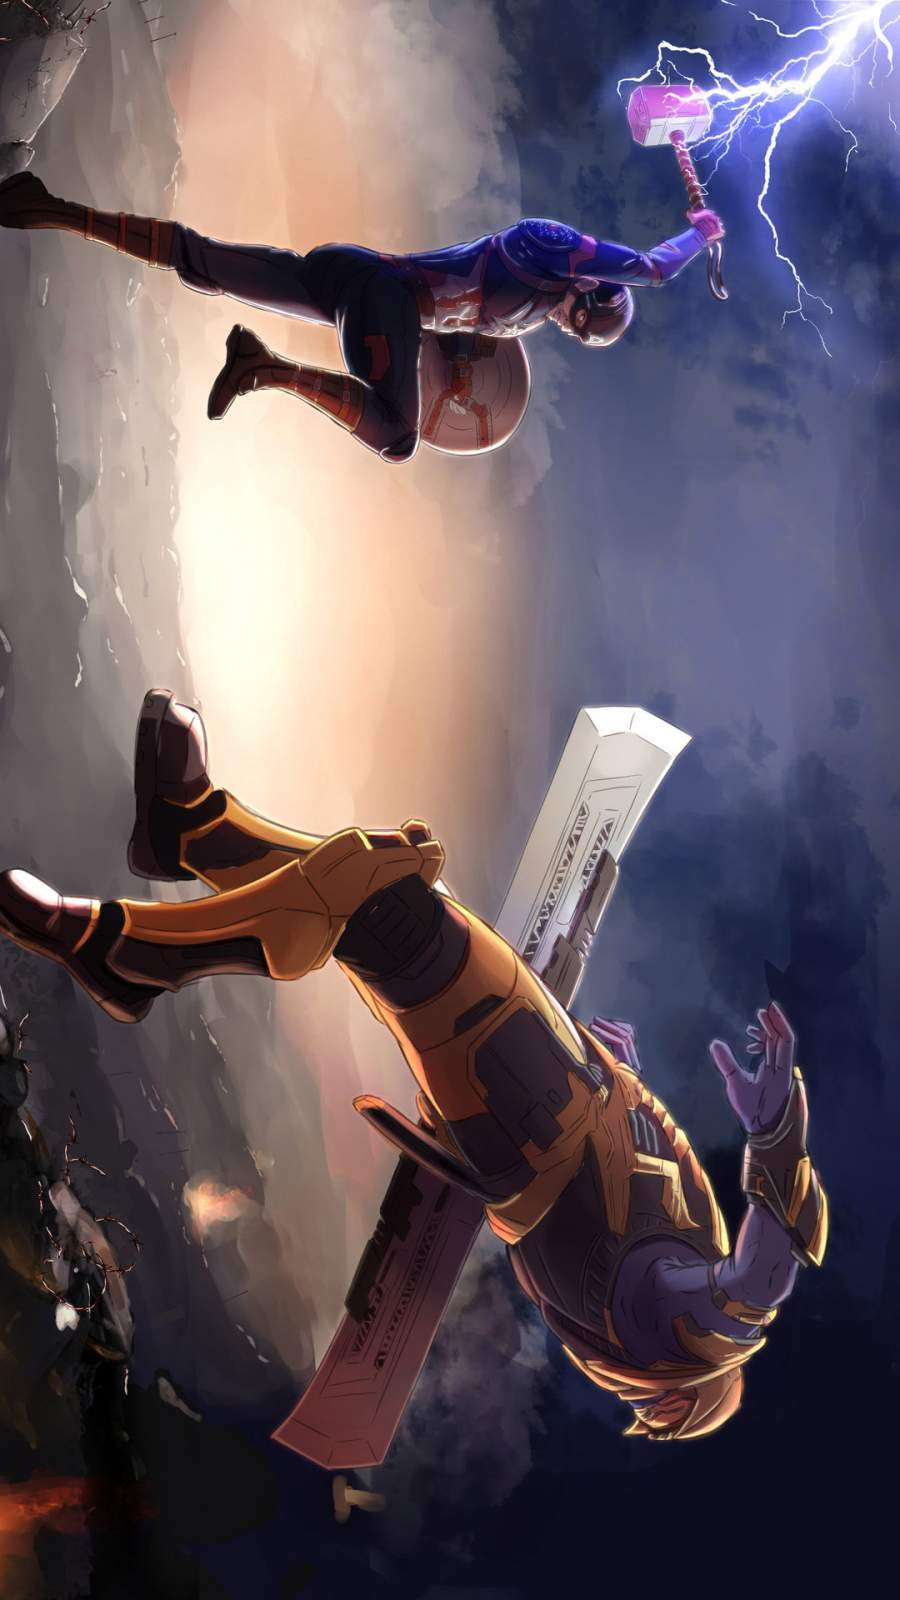 Captain America Mjolnir vs Thanos iPhone Wallpaper